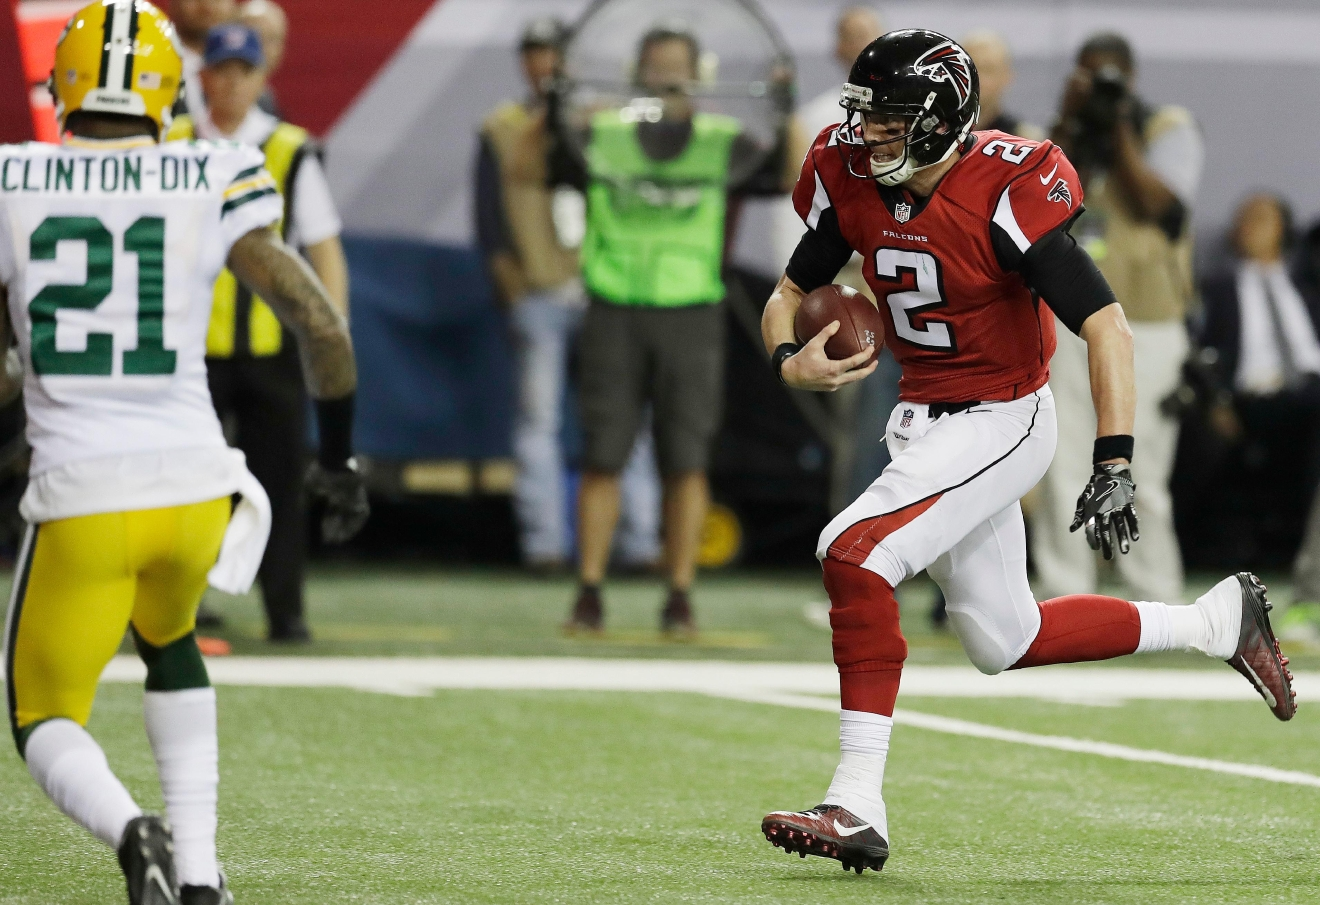 Atlanta Falcons' Matt Ryan runs for a touchdown during the first half of the NFC championship game against the Green Bay Packers Sunday, Jan. 22, 2017, in Atlanta. (AP Photo/David J. Phillip)